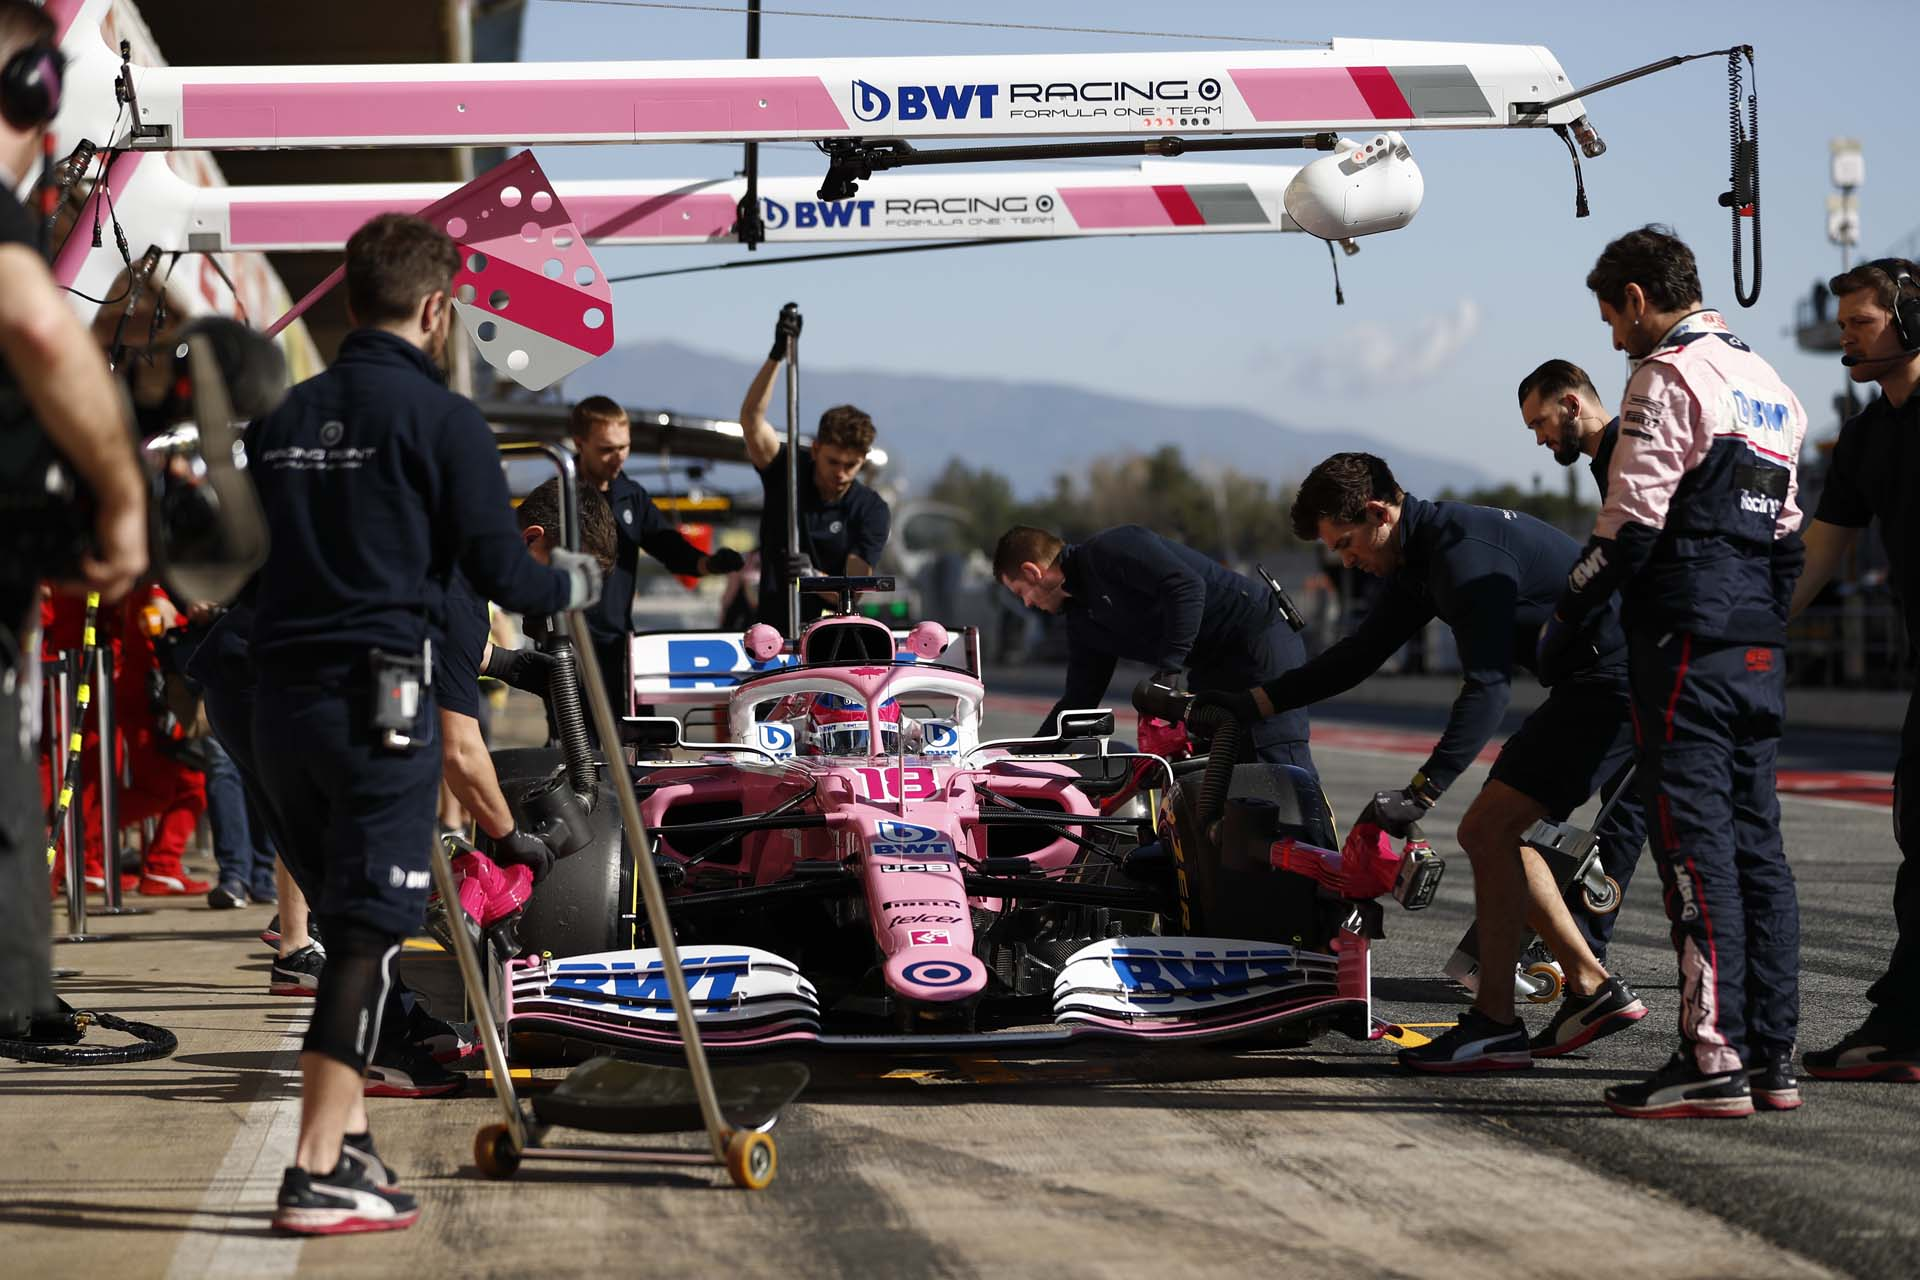 Lance Stroll, Racing Point RP20 during a pit stop